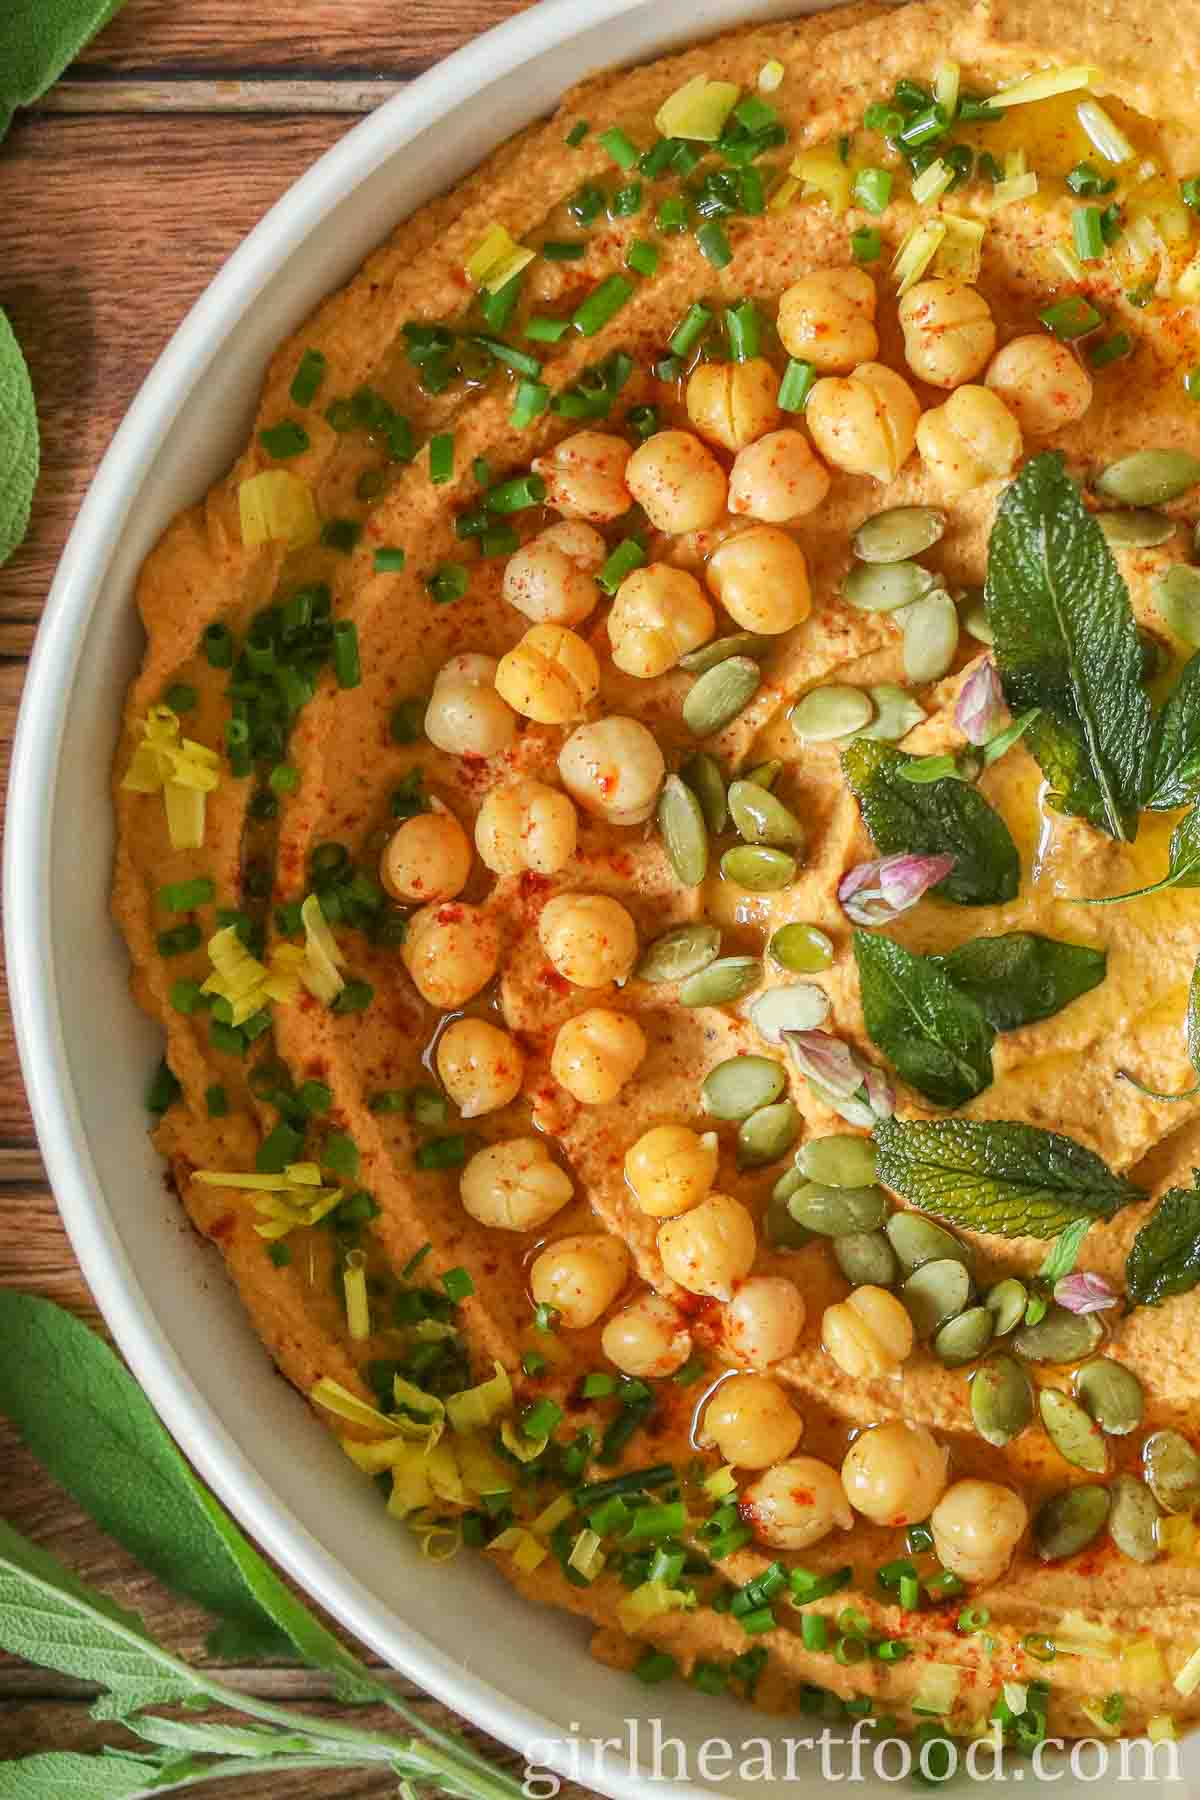 Close-up of a bowl of pumpkin hummus garnished with herbs, chickpeas, oil and pumpkin seeds.